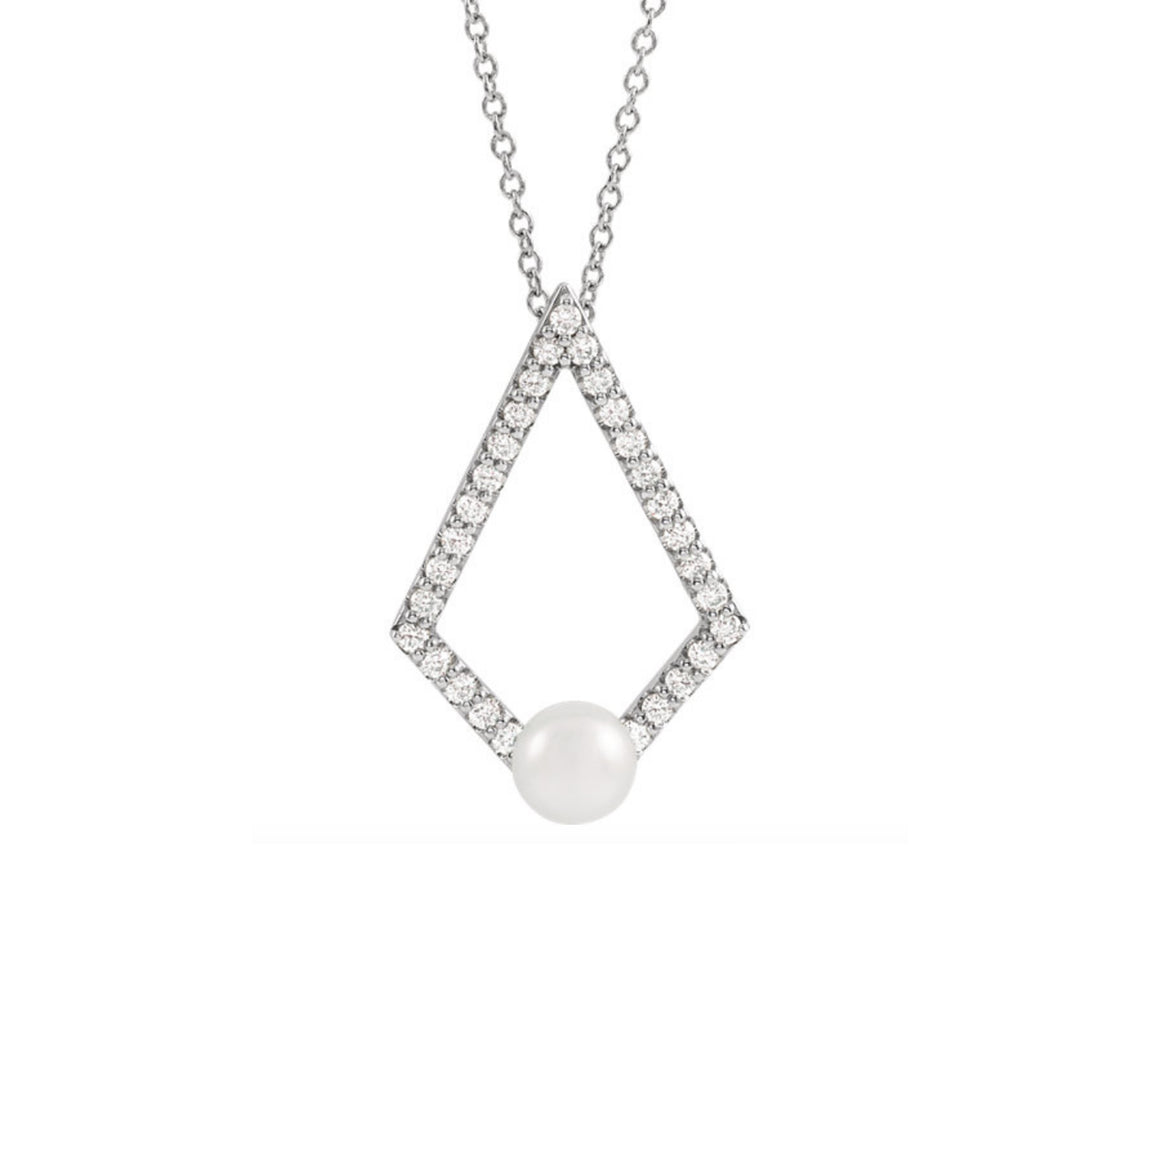 Pearl and Diamond Geometric Necklace in White, Yellow or Rose Gold - Talisman Collection Fine Jewelers